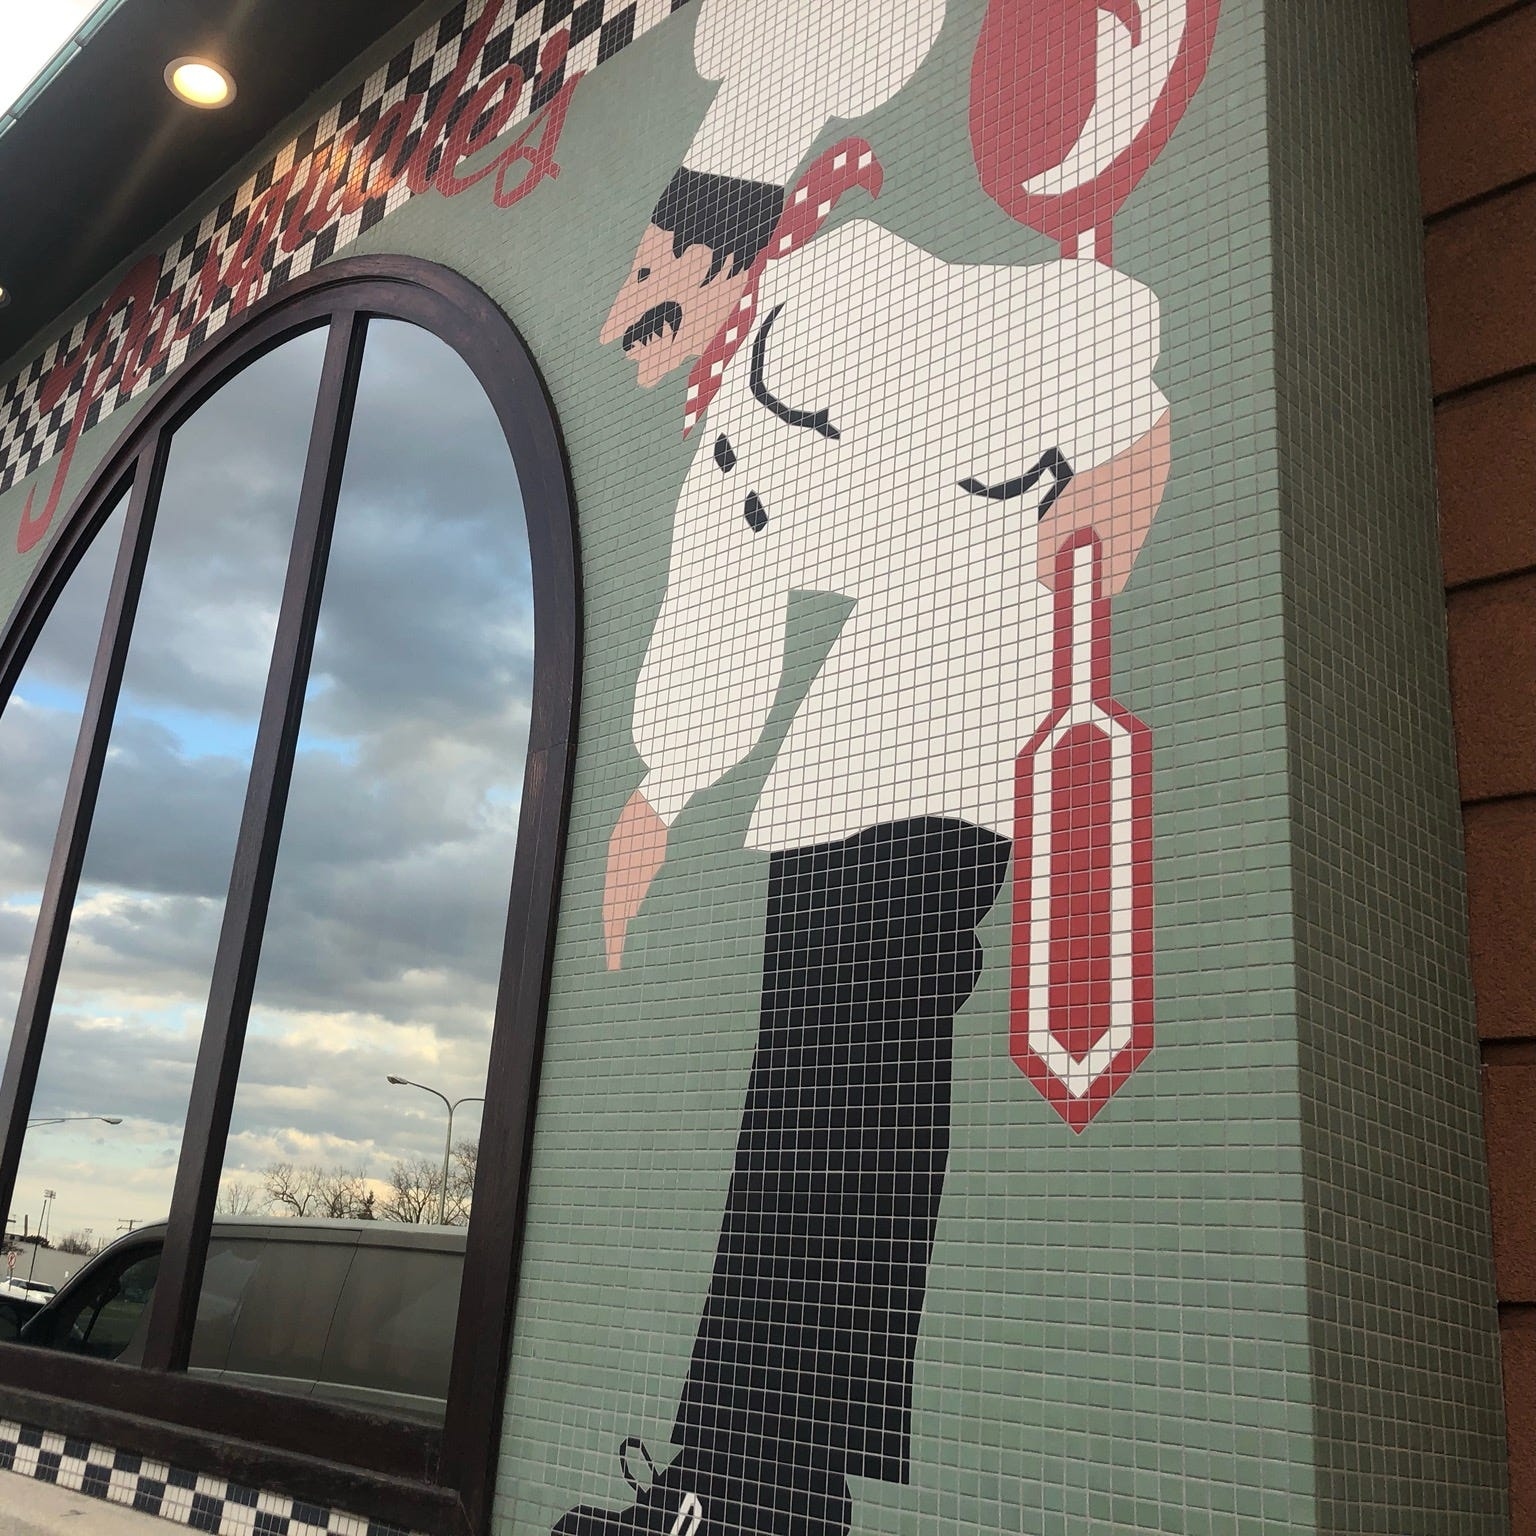 Mosaic tile outside of Pasquale's in Royal Oak on Woodward north of 13 Mile.